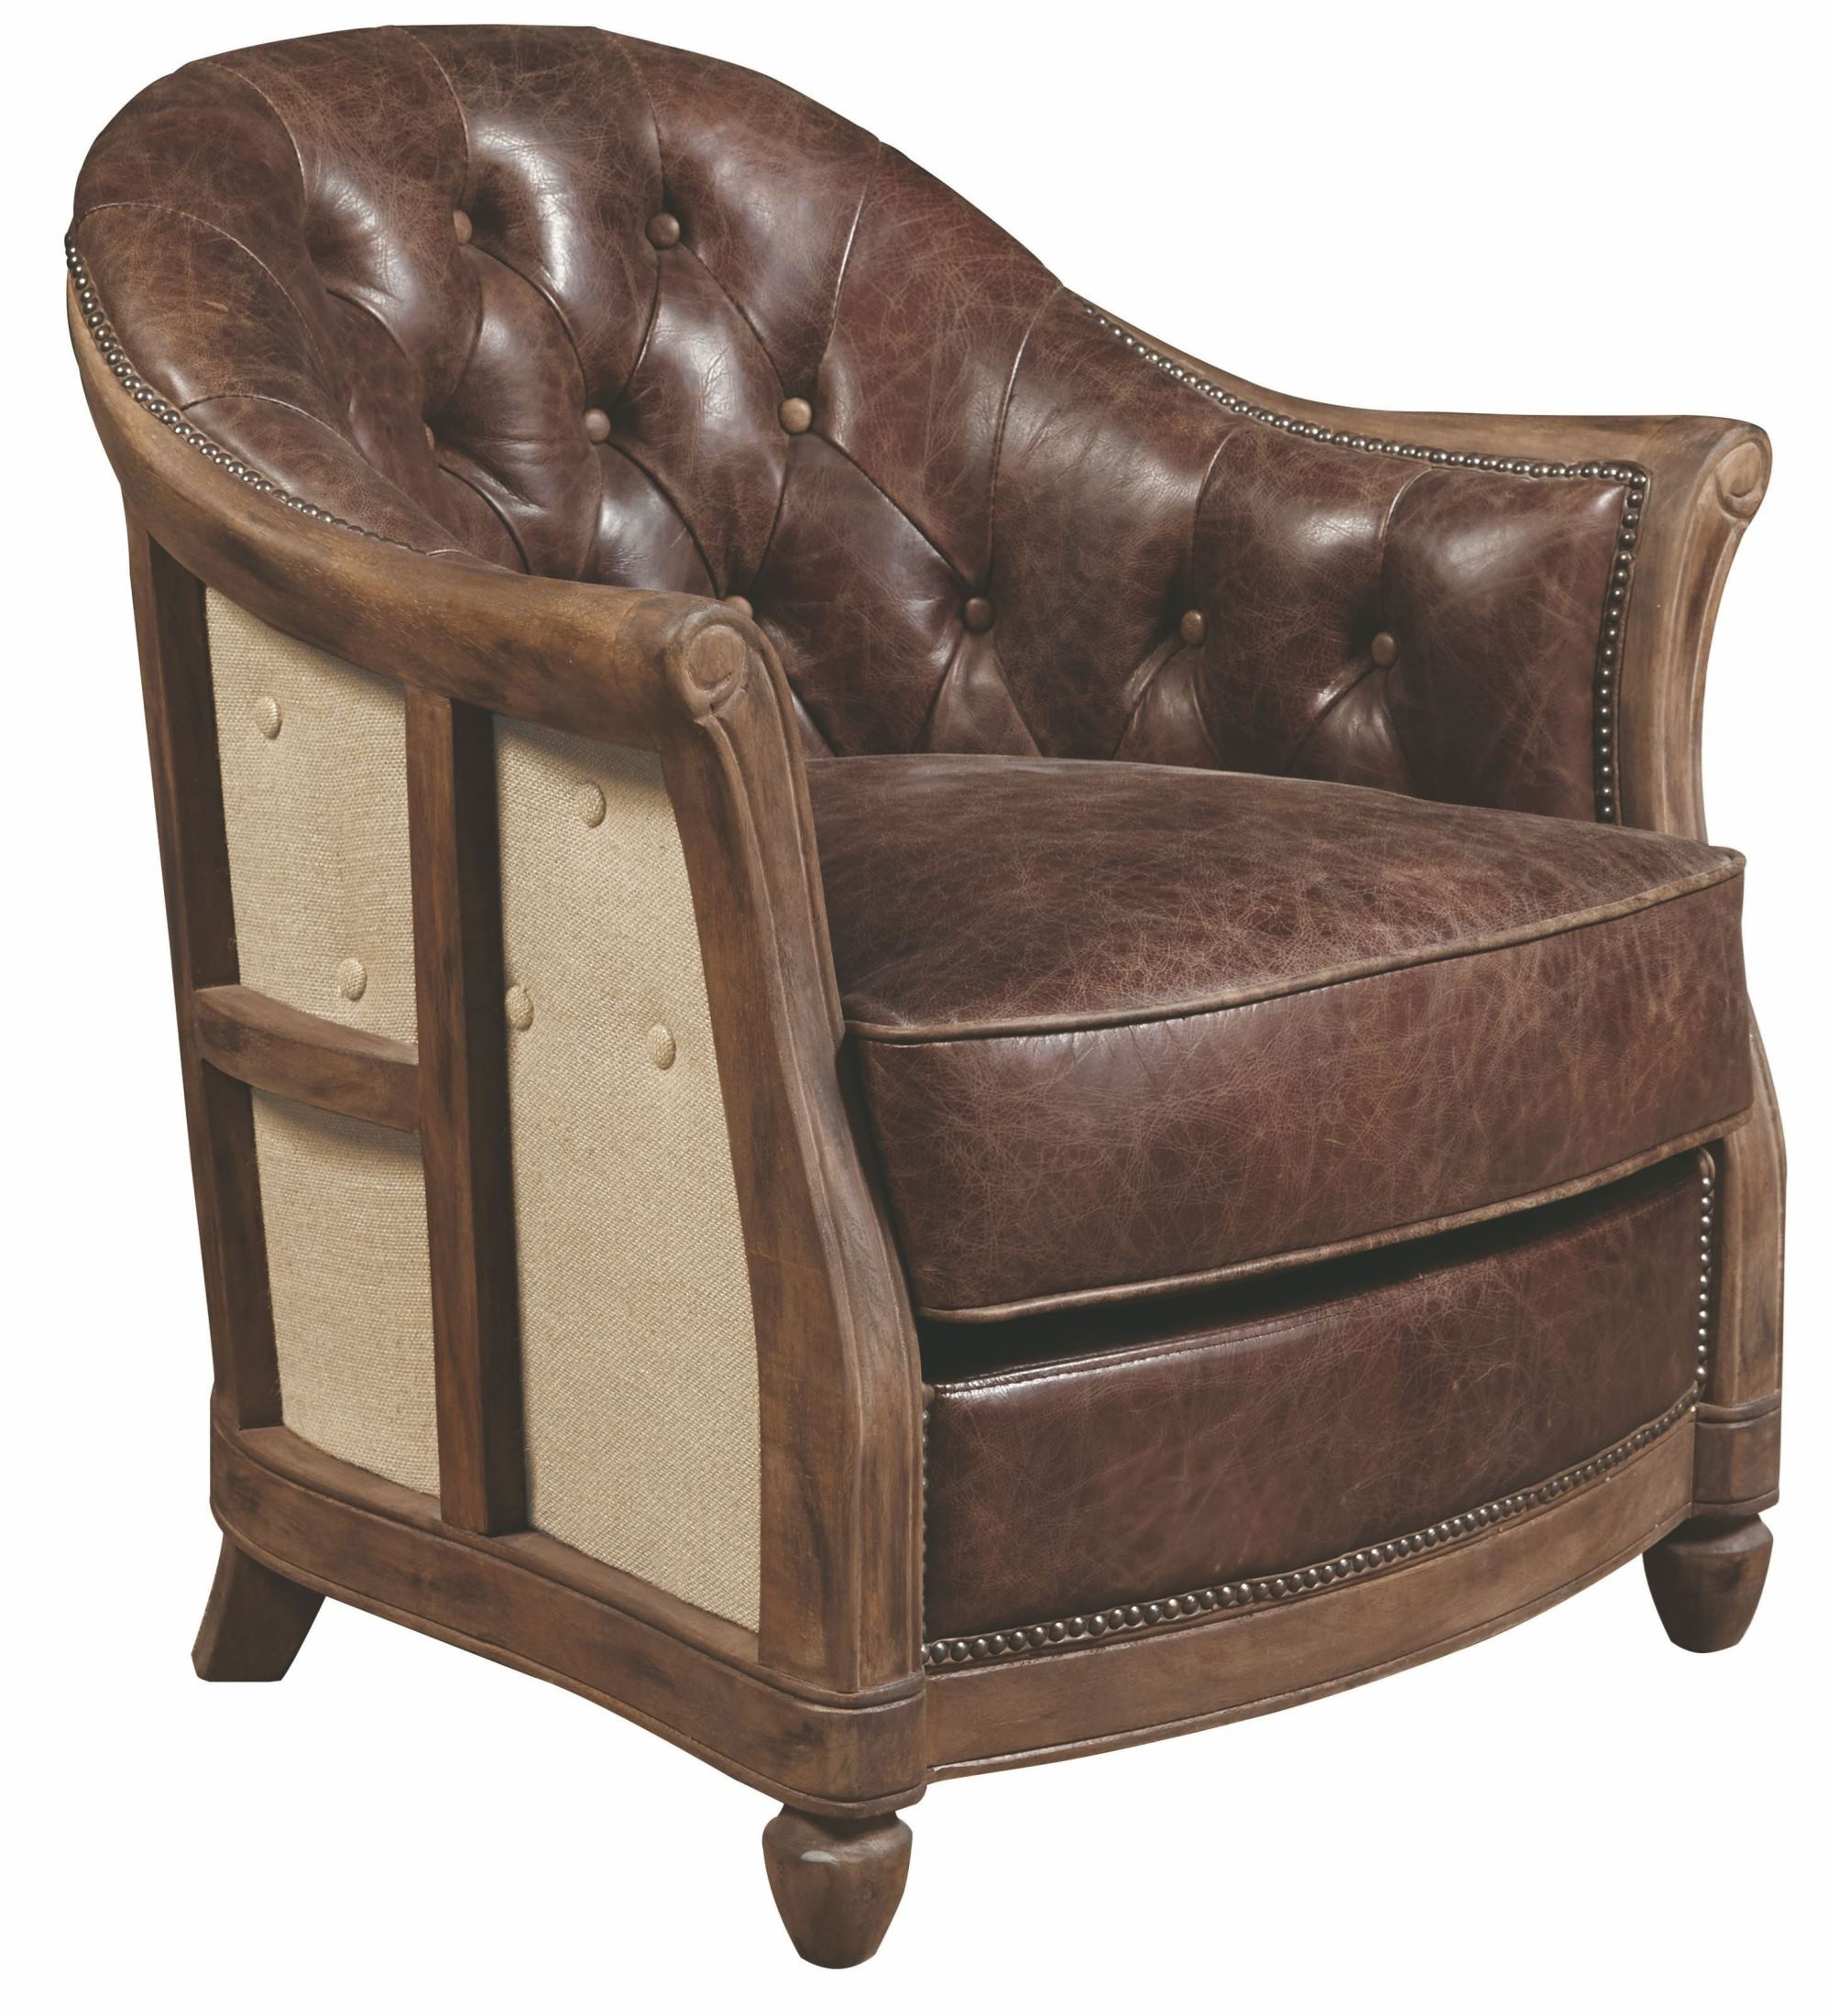 Amron Brown Leather Accent Chair Accent Chairs Brown: Andrew Brown Leather Accent Chair From Pulaski